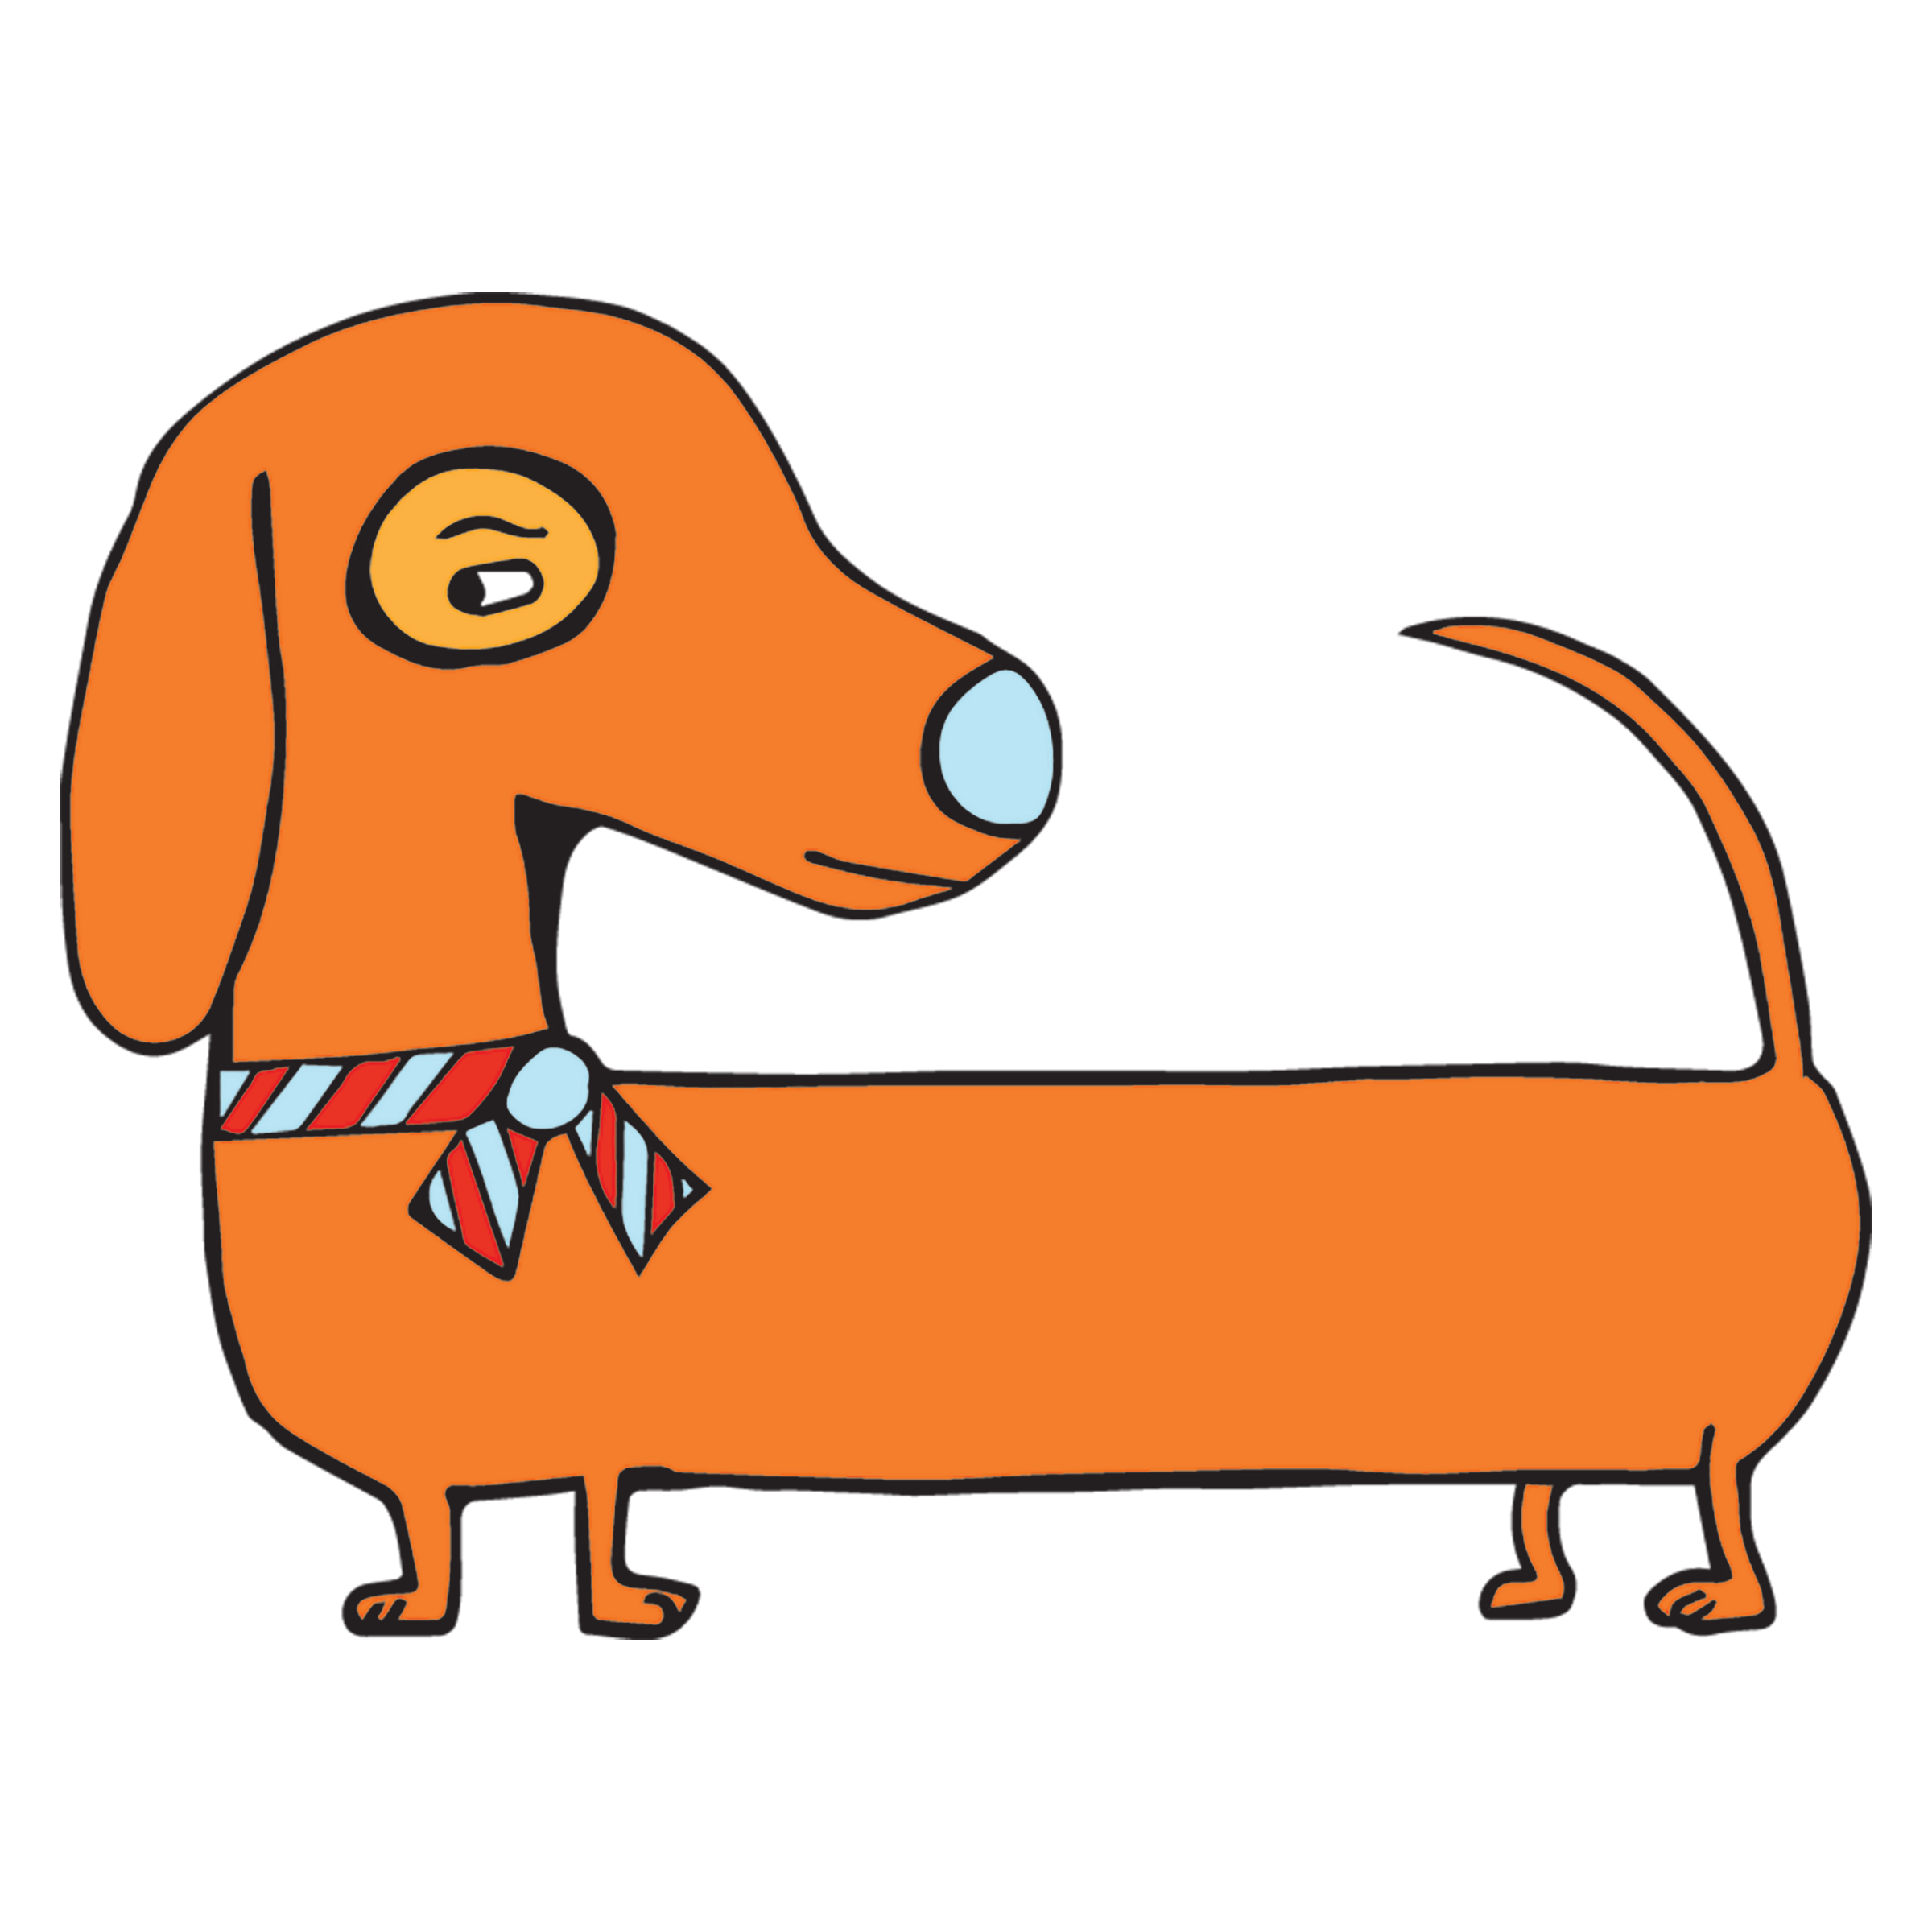 Crafty Wiener Dog